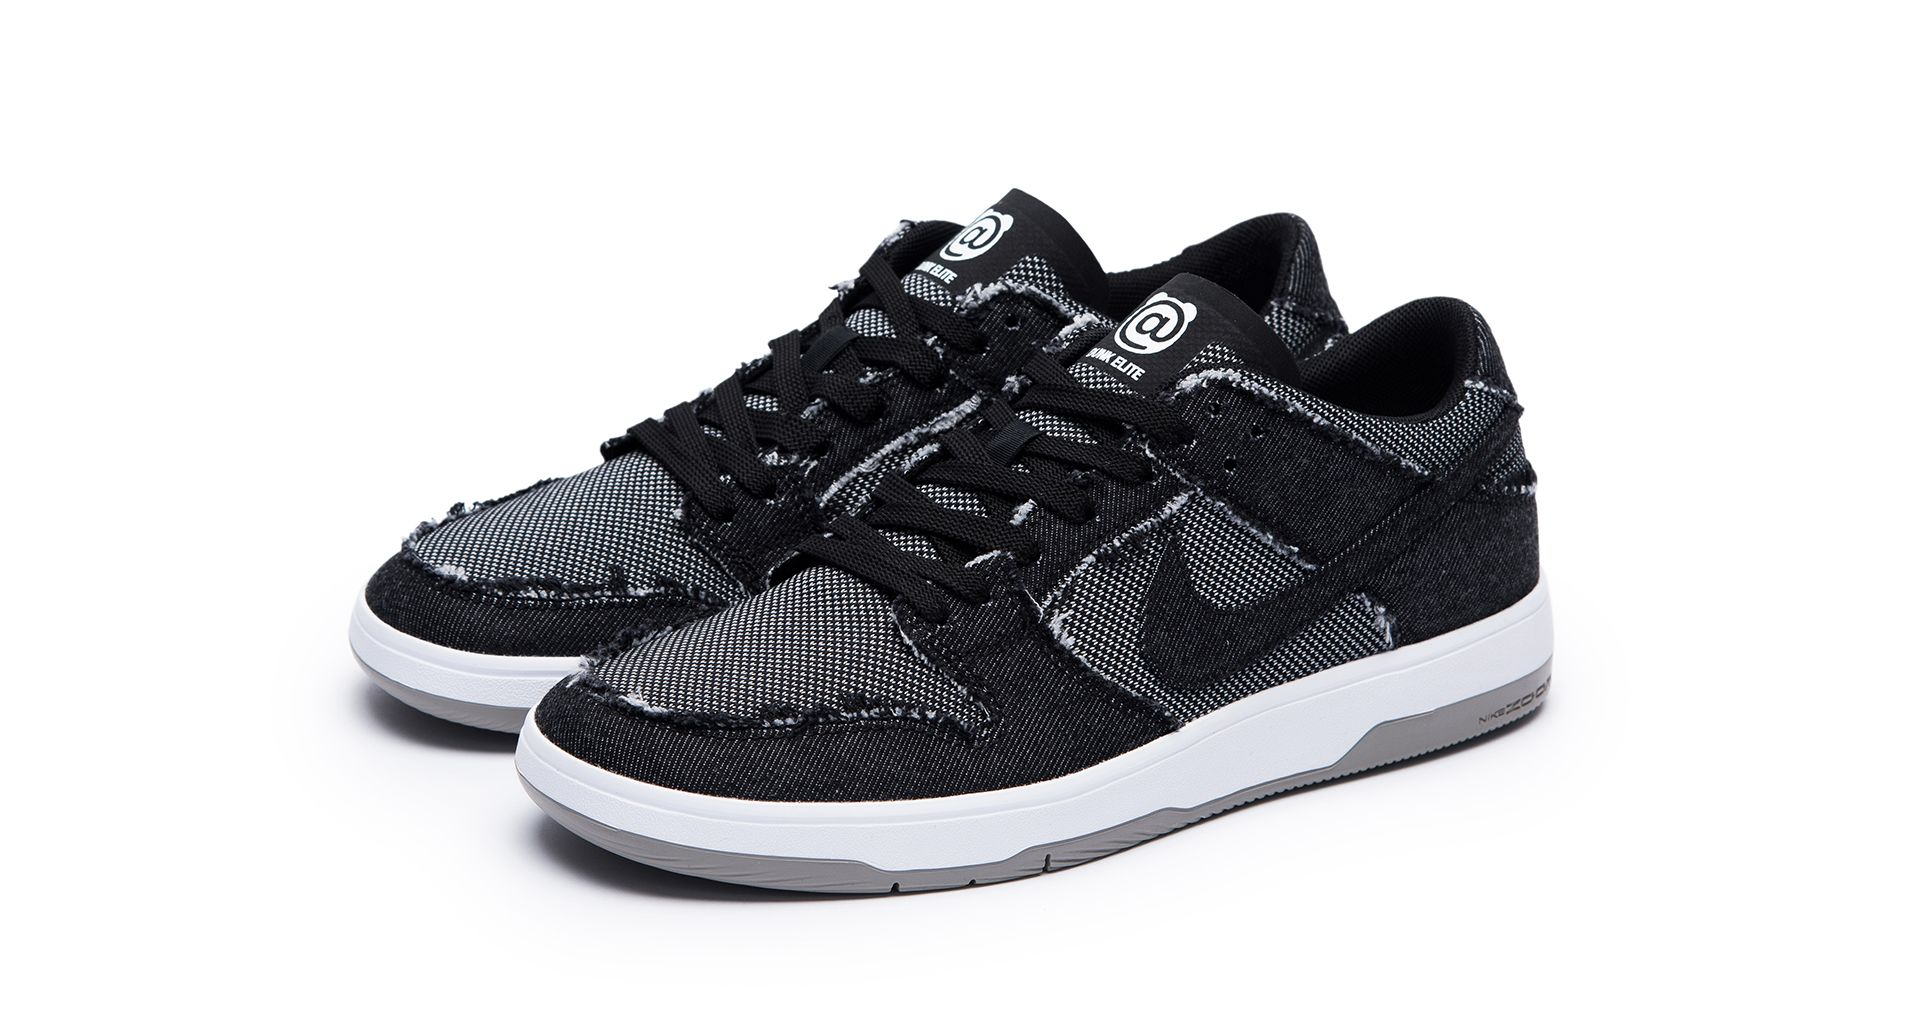 new high quality fresh styles best place nike dunk bearbrick | Benvenuto per comprare | madeiranetworks.com !